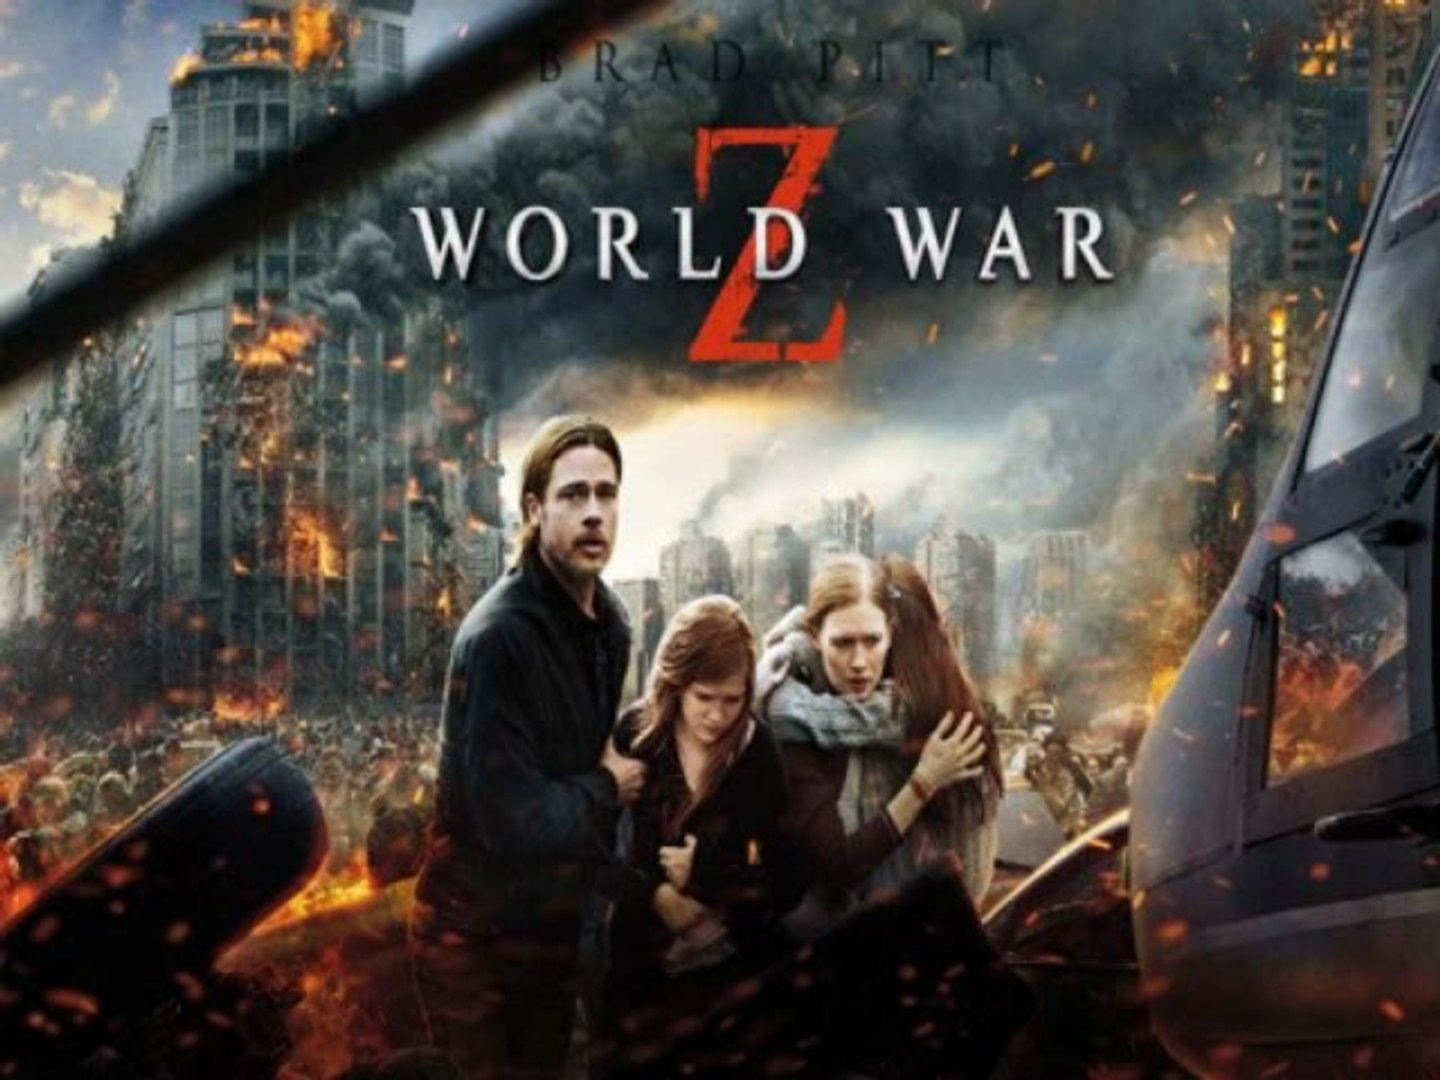 World War Z Complete Movie Online **** FREE Movie HDHQ [streaming movie quality]